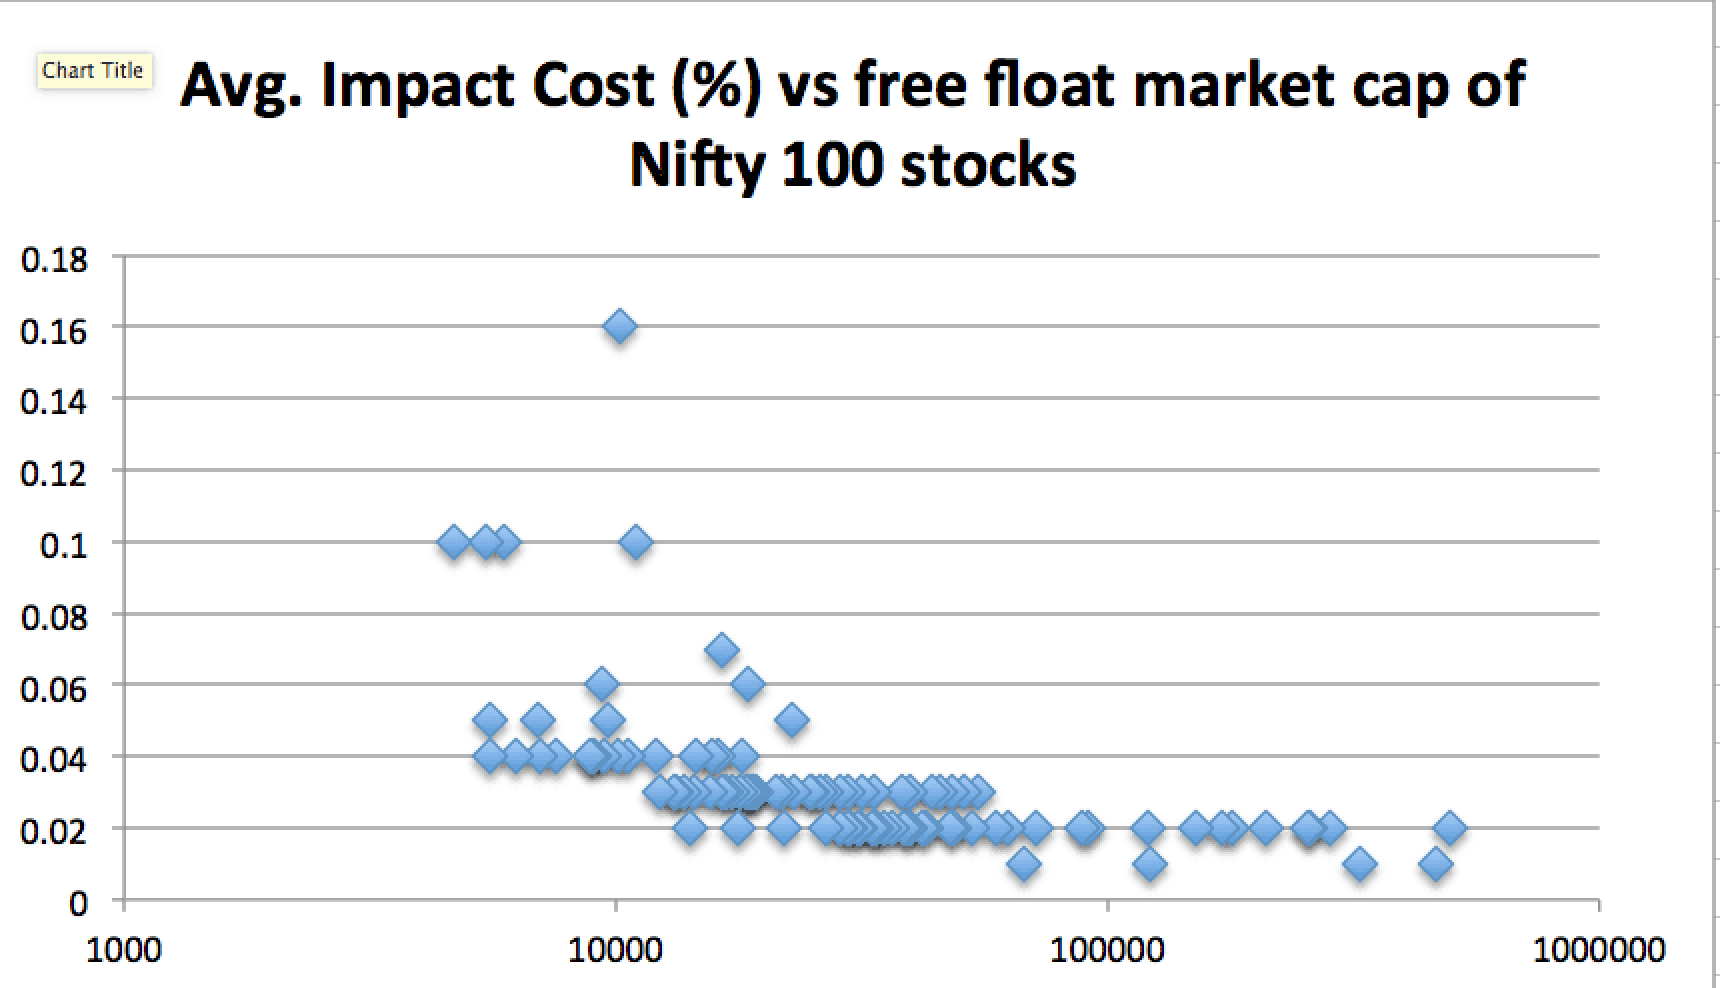 Impact cost vs Free float market cap of NIfty 100 stocks